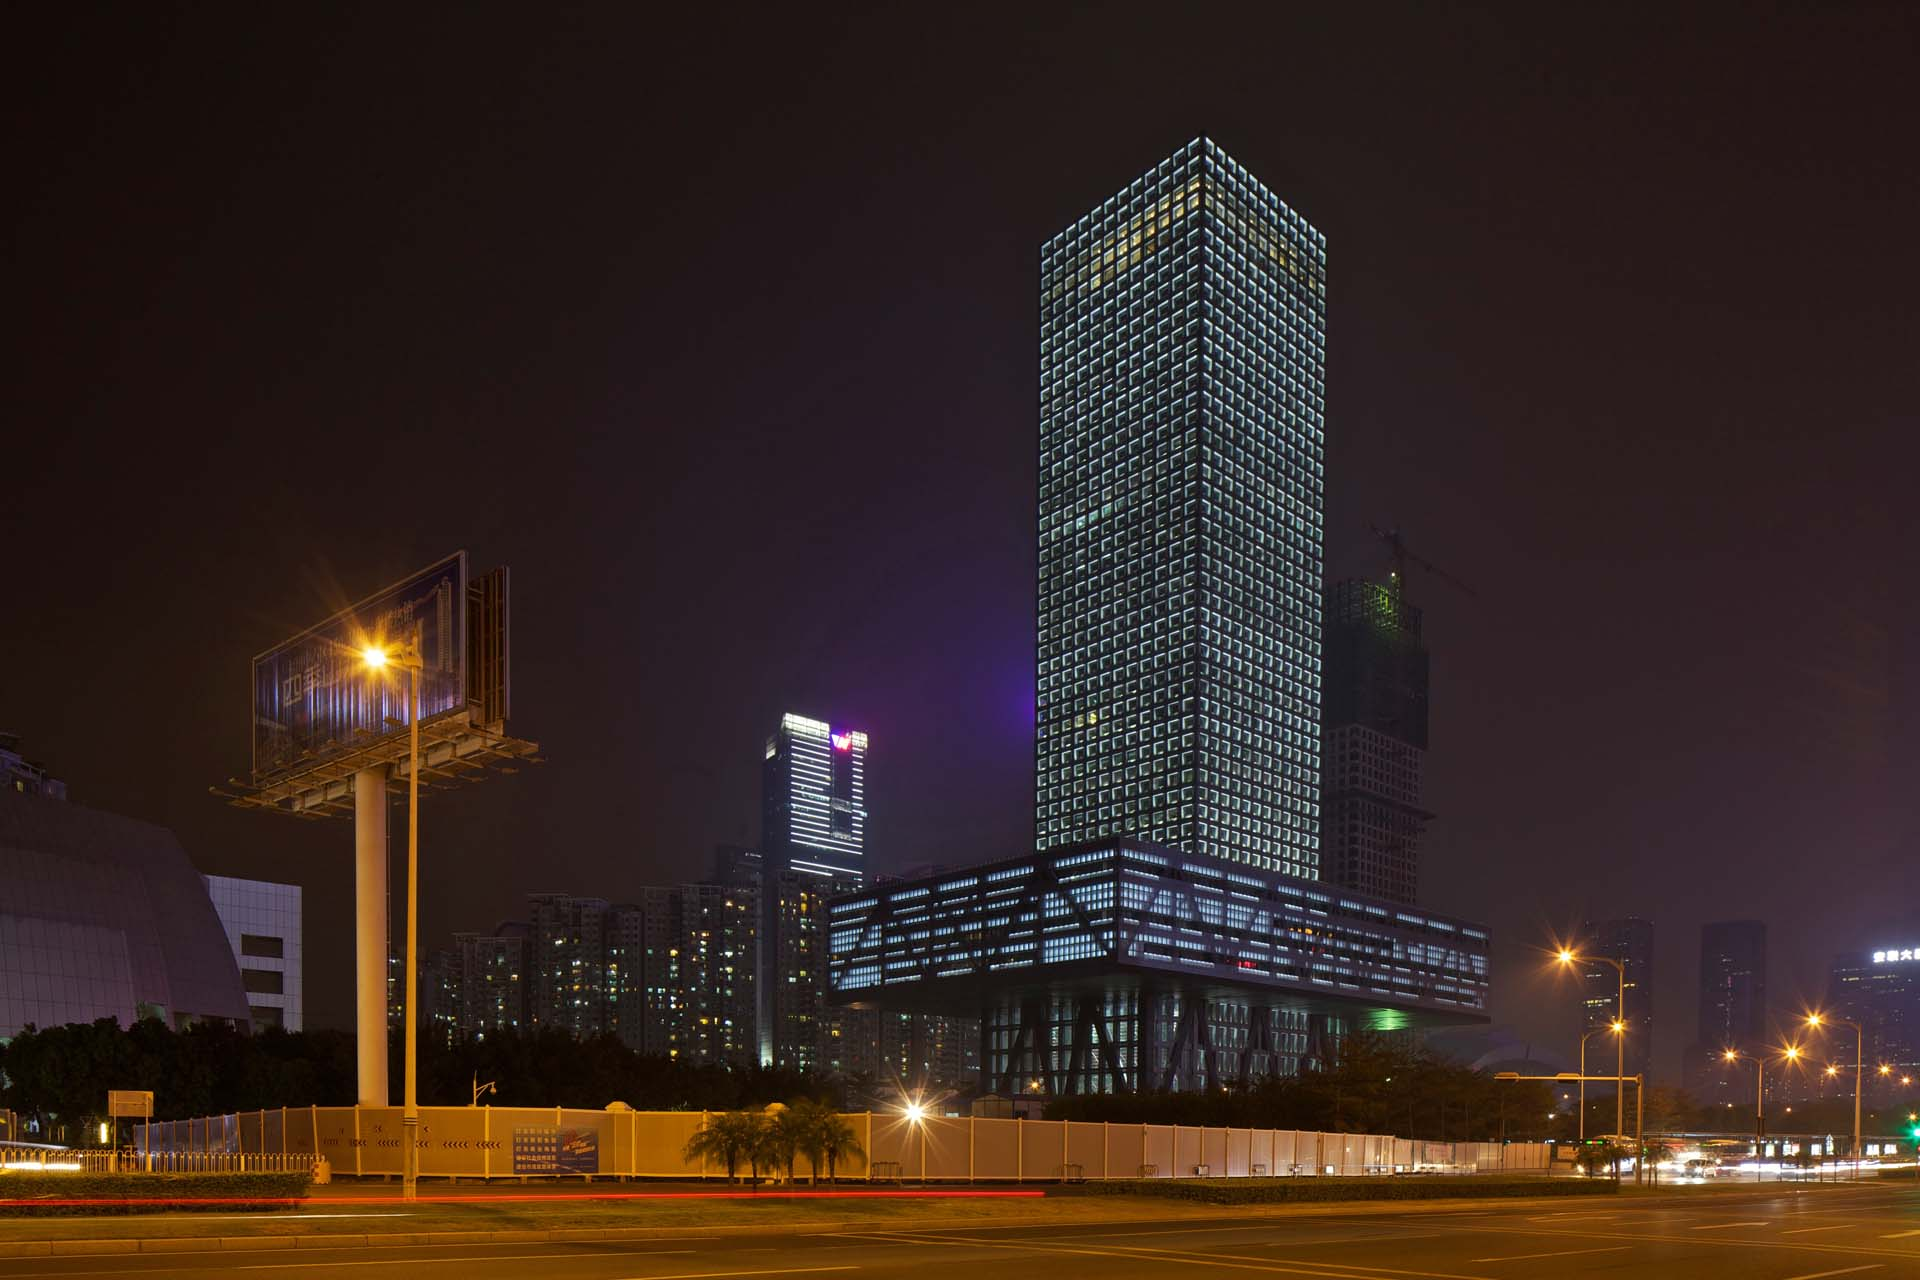 reading oma s shenzhen stock exchange uncube shenzhen stock exchange at night while proudly defying gravity it still complies traditional